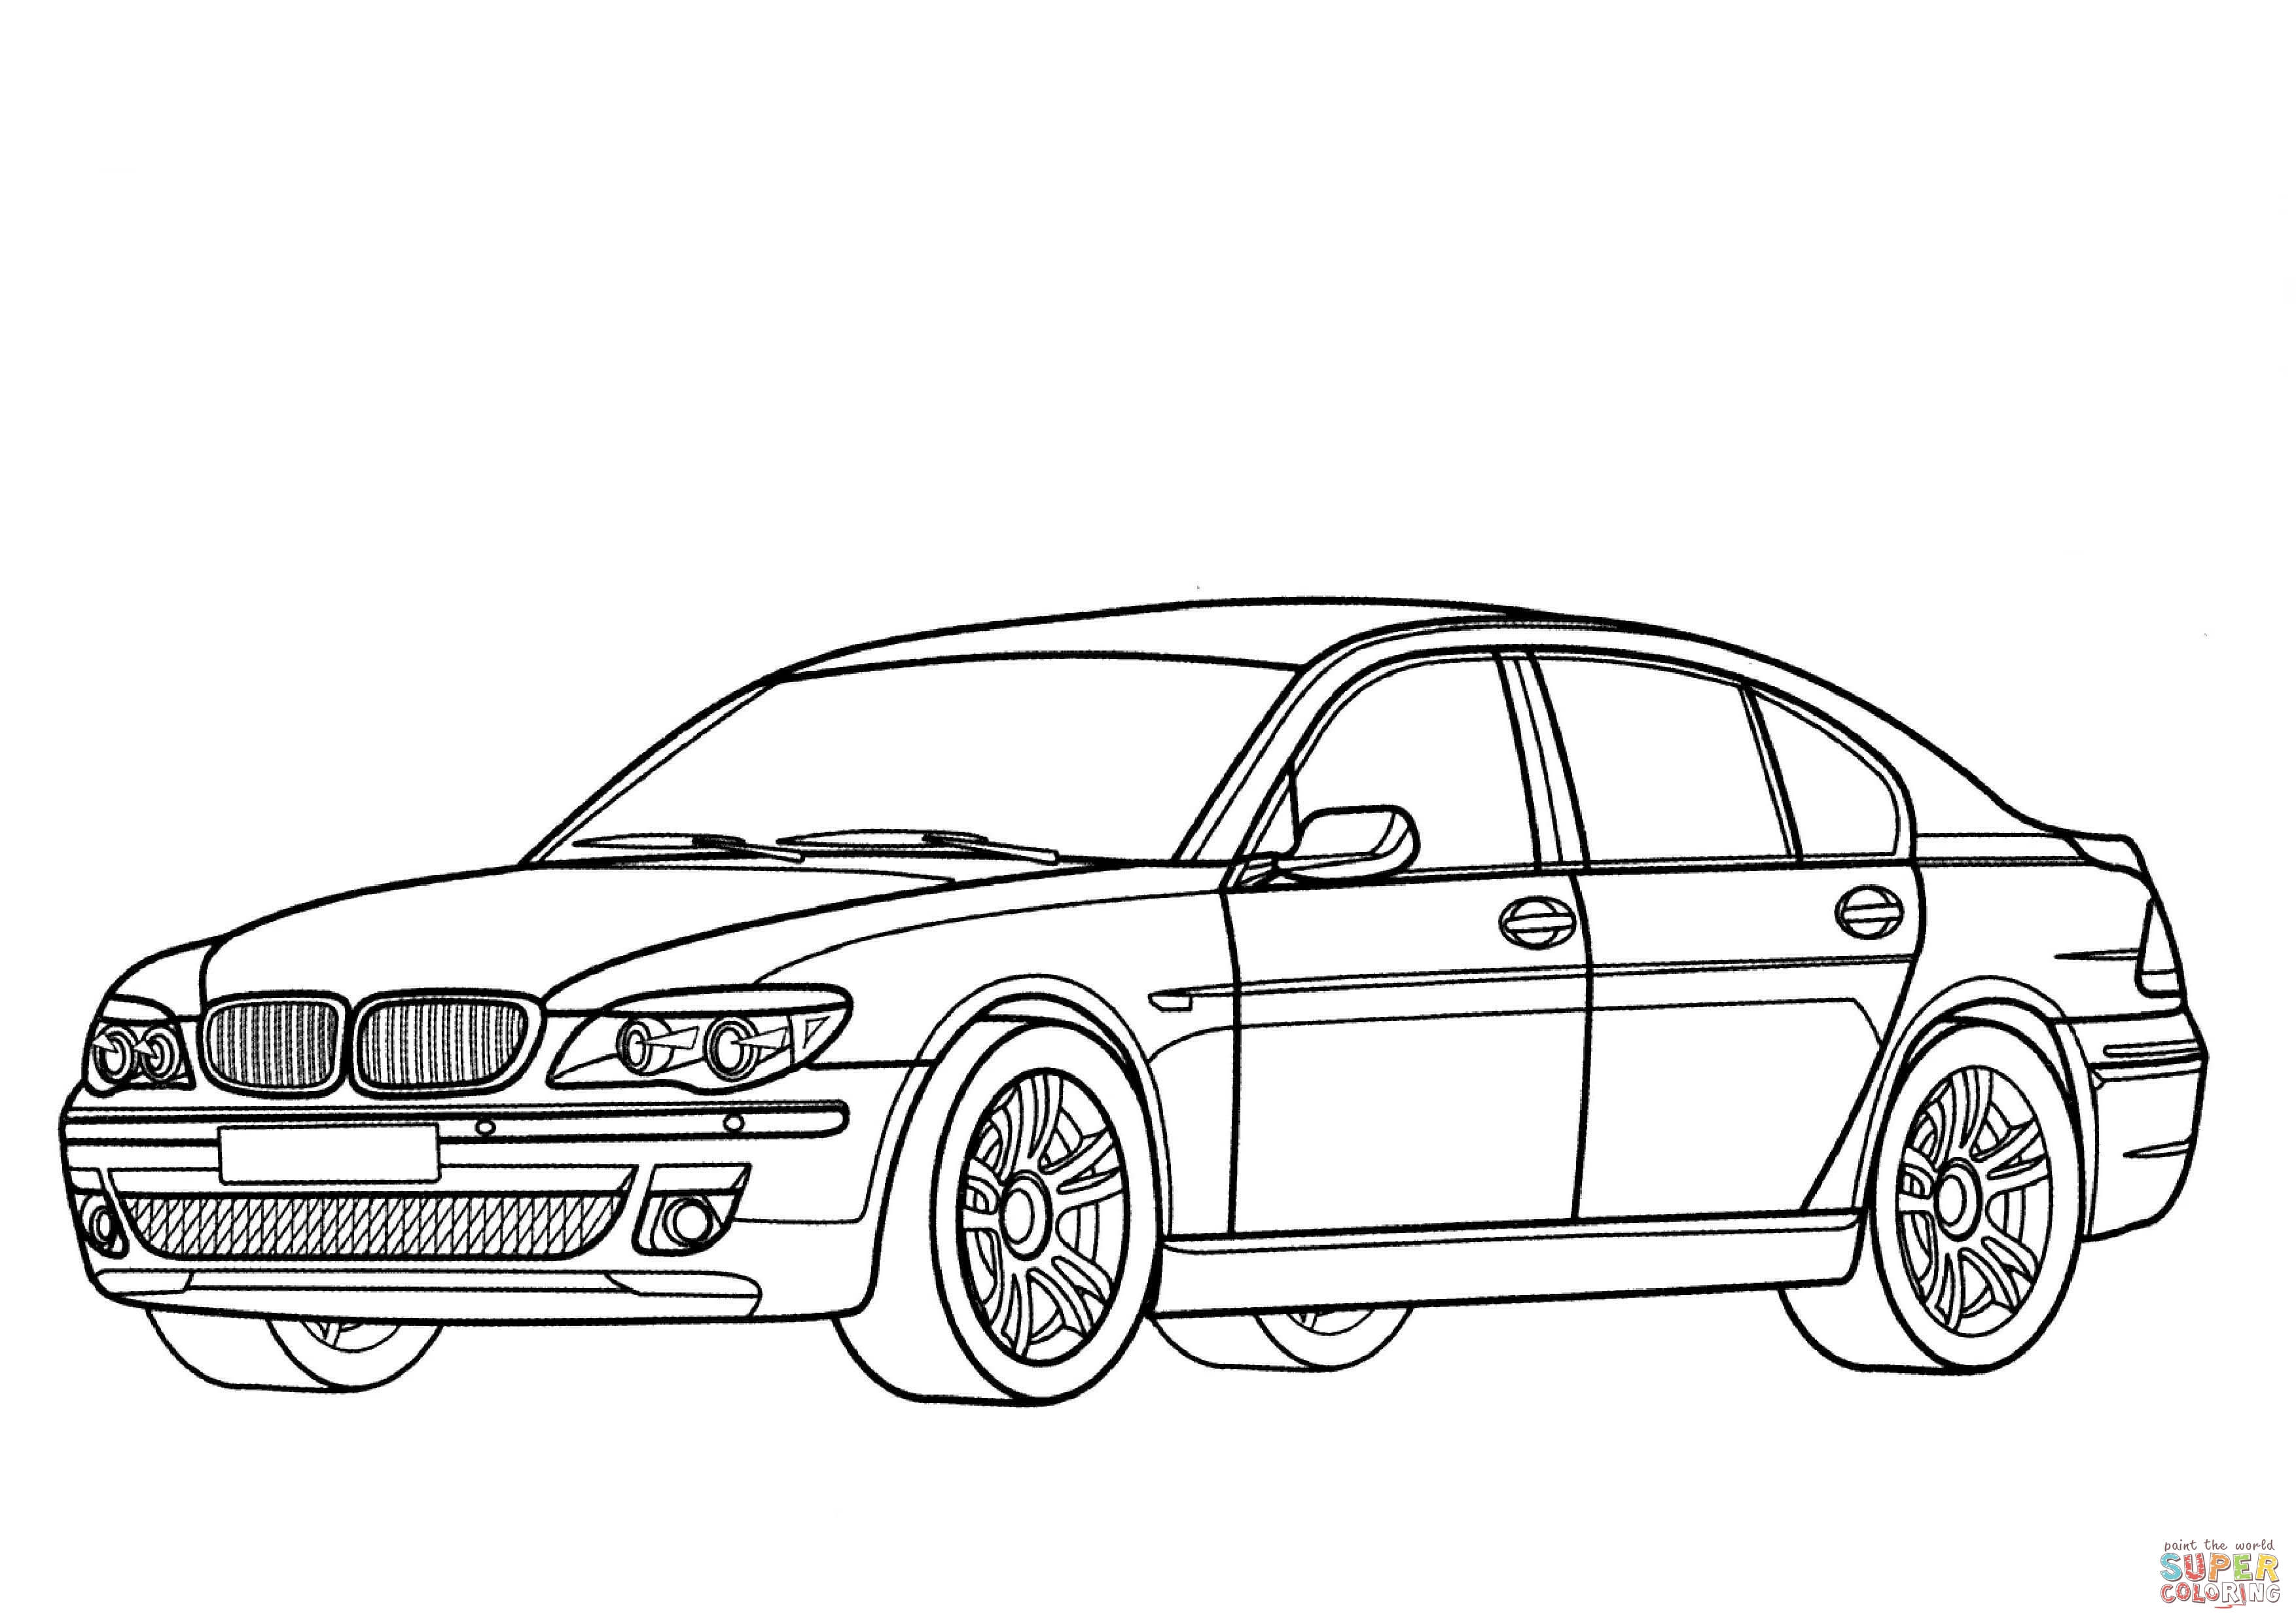 coloring cars bmw fresh bmw coloring pages design printable sheet cars coloring cars bmw